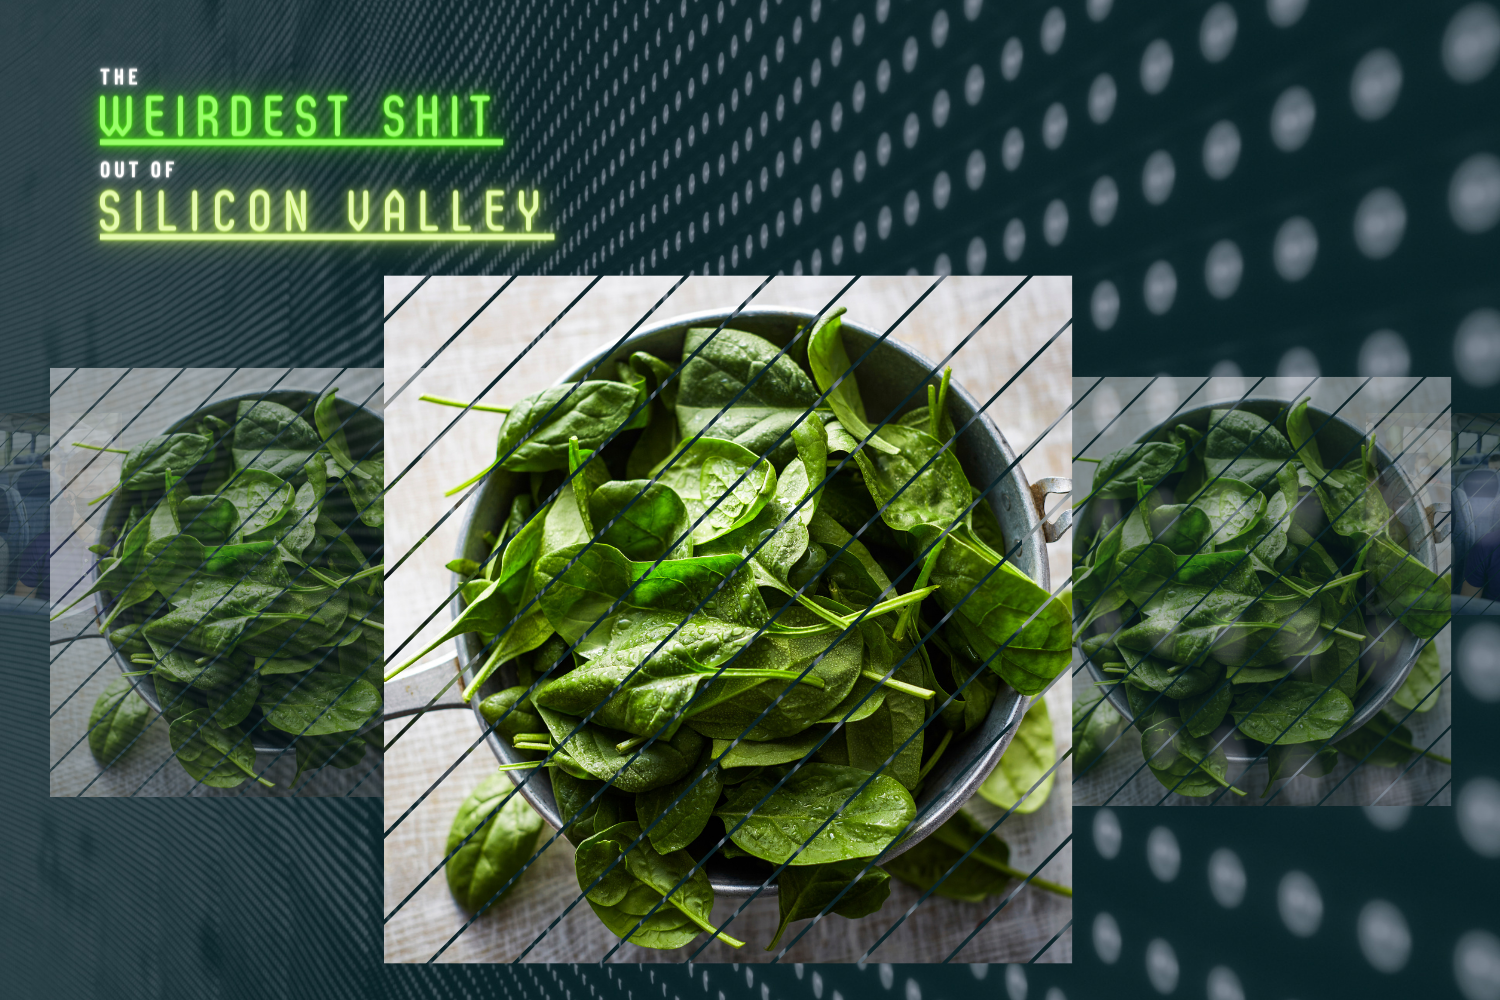 The Weirdest Shit column name next to 3 pics of a pan of spinach; the center 1 is solid, the other 2 are transparent.